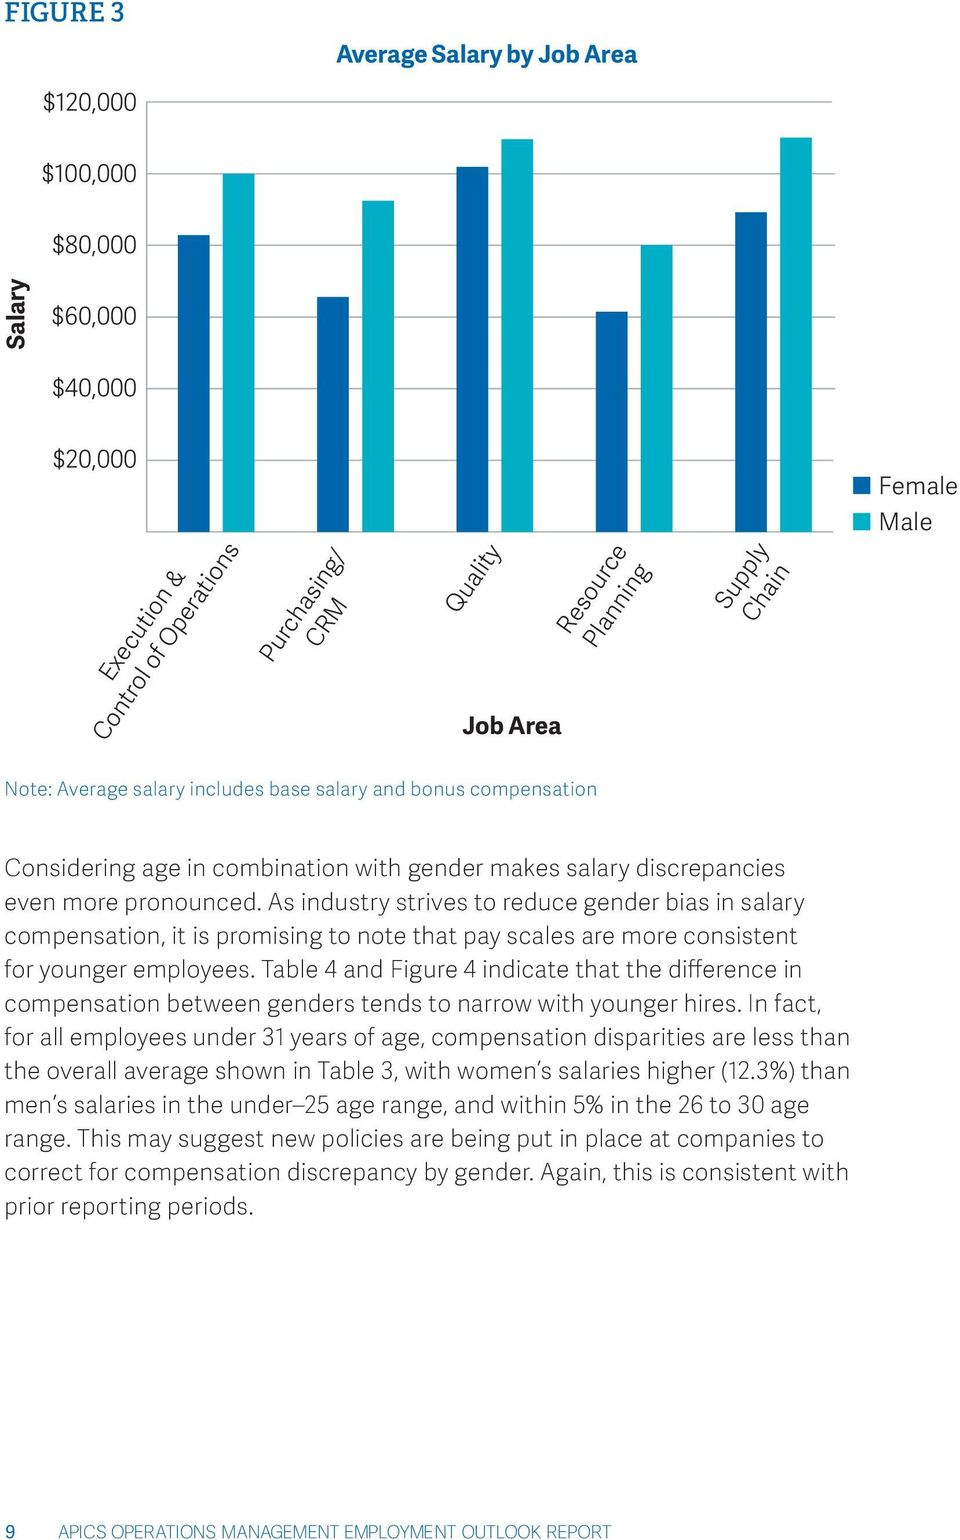 As industry strives to reduce gender bias in salary compensation, it is promising to note that pay scales are more consistent for younger employees.